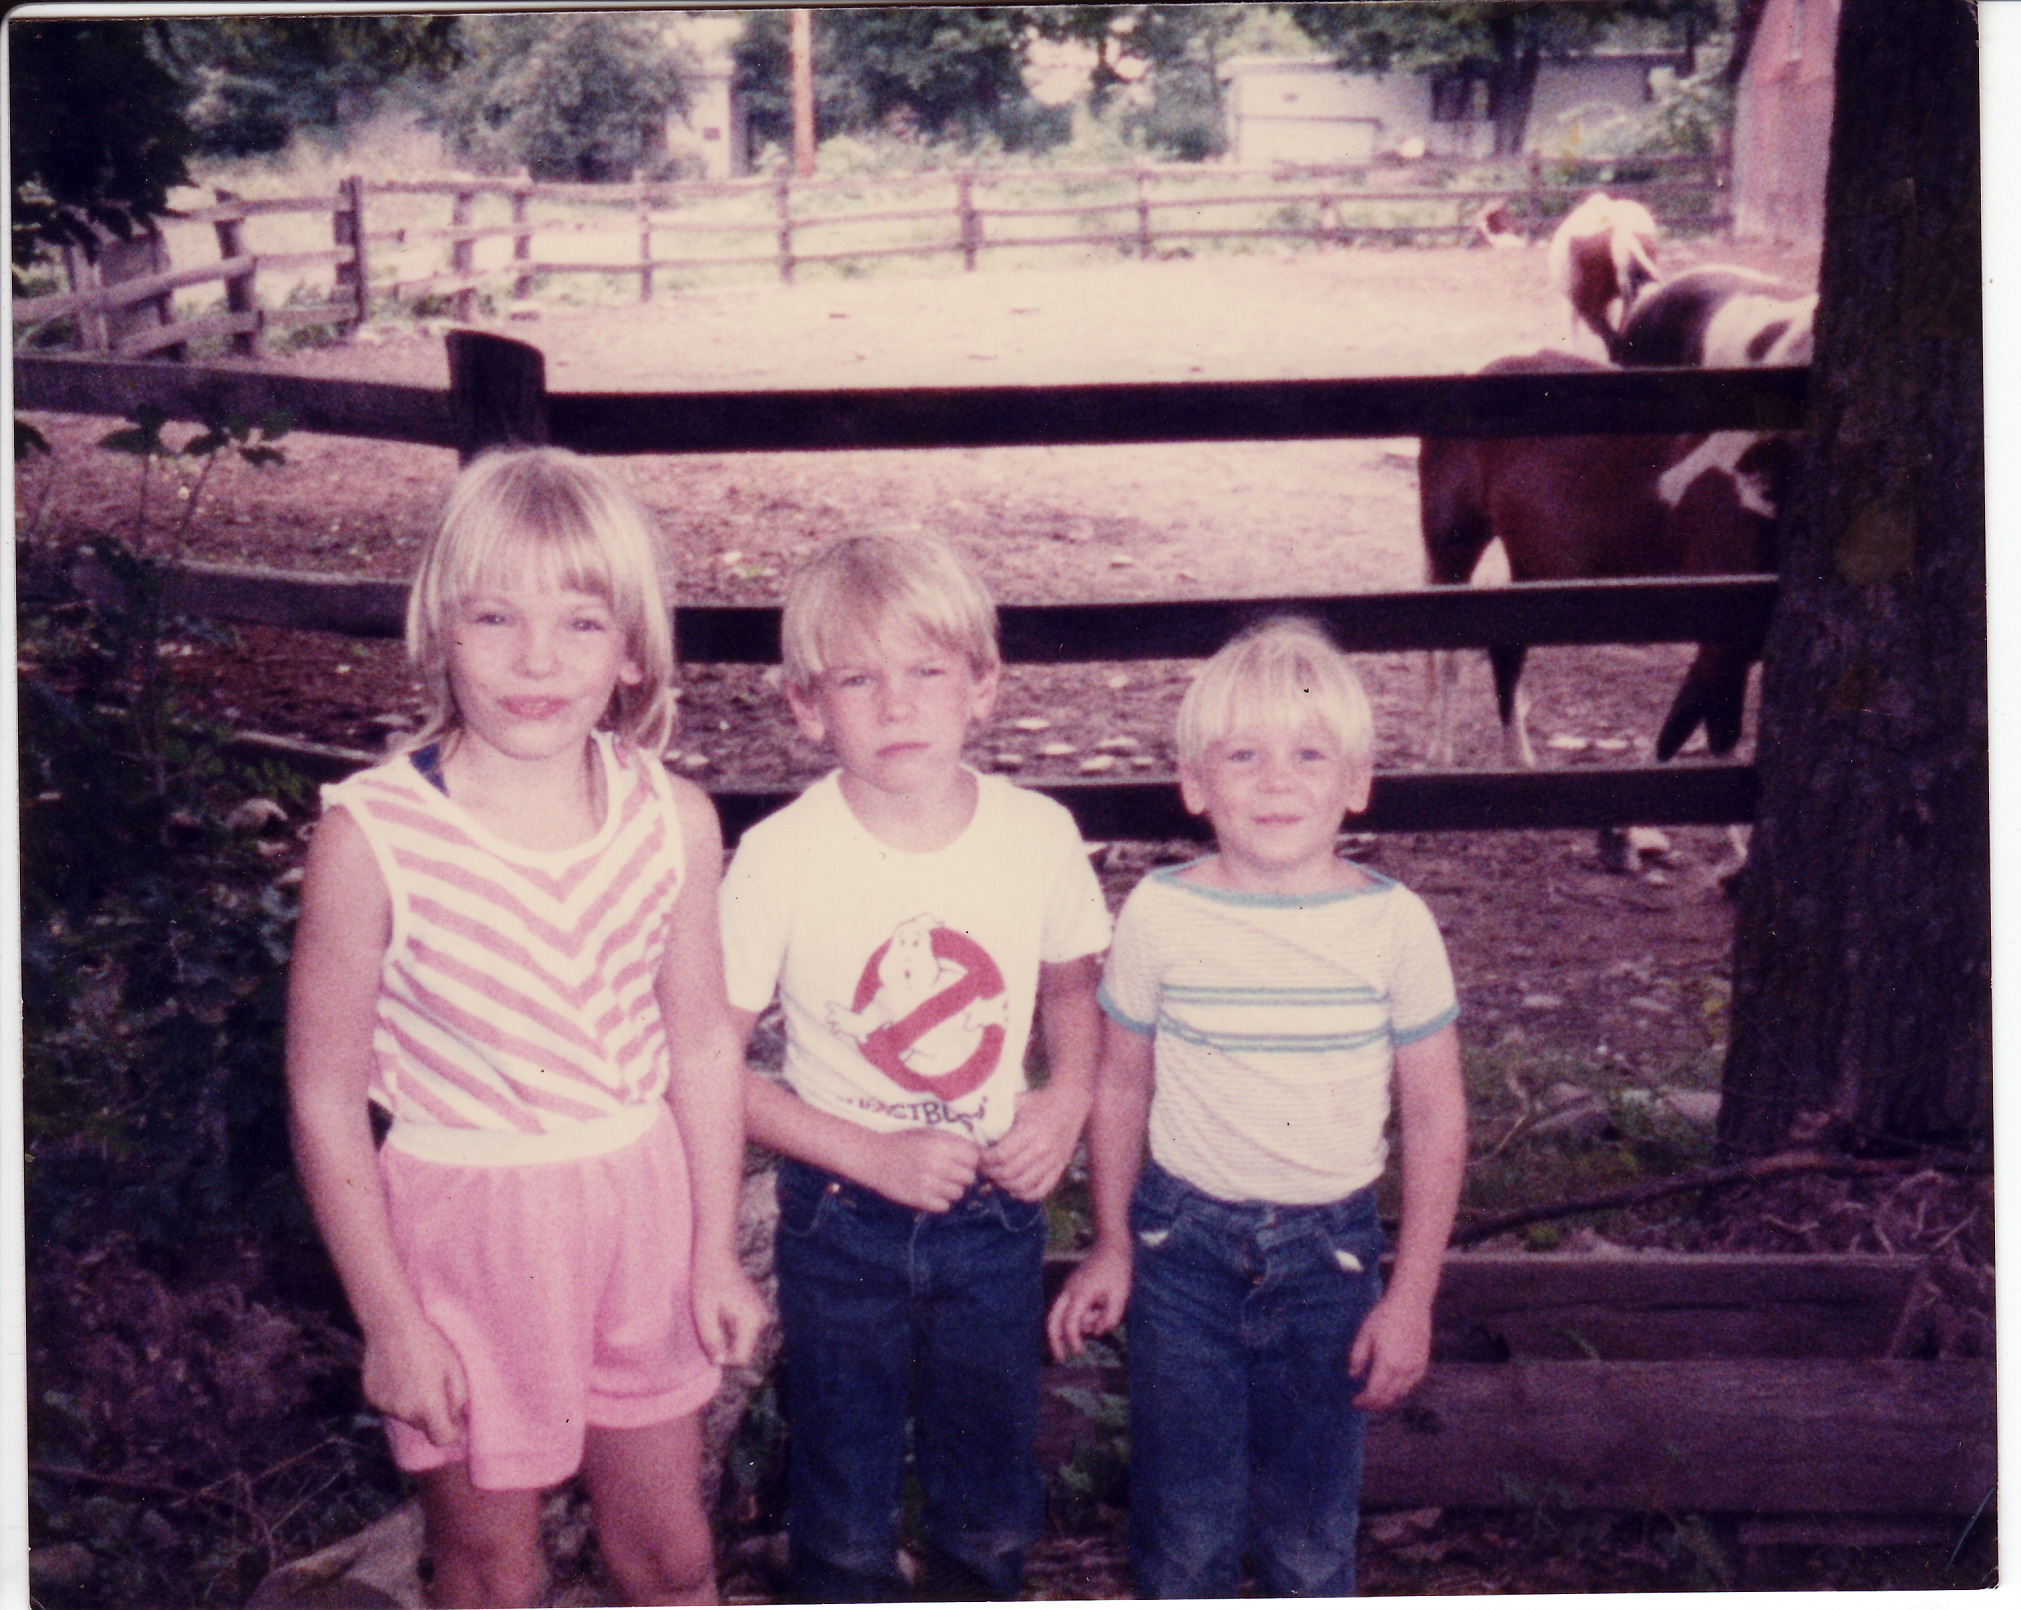 Kim with her brothers and some horses.